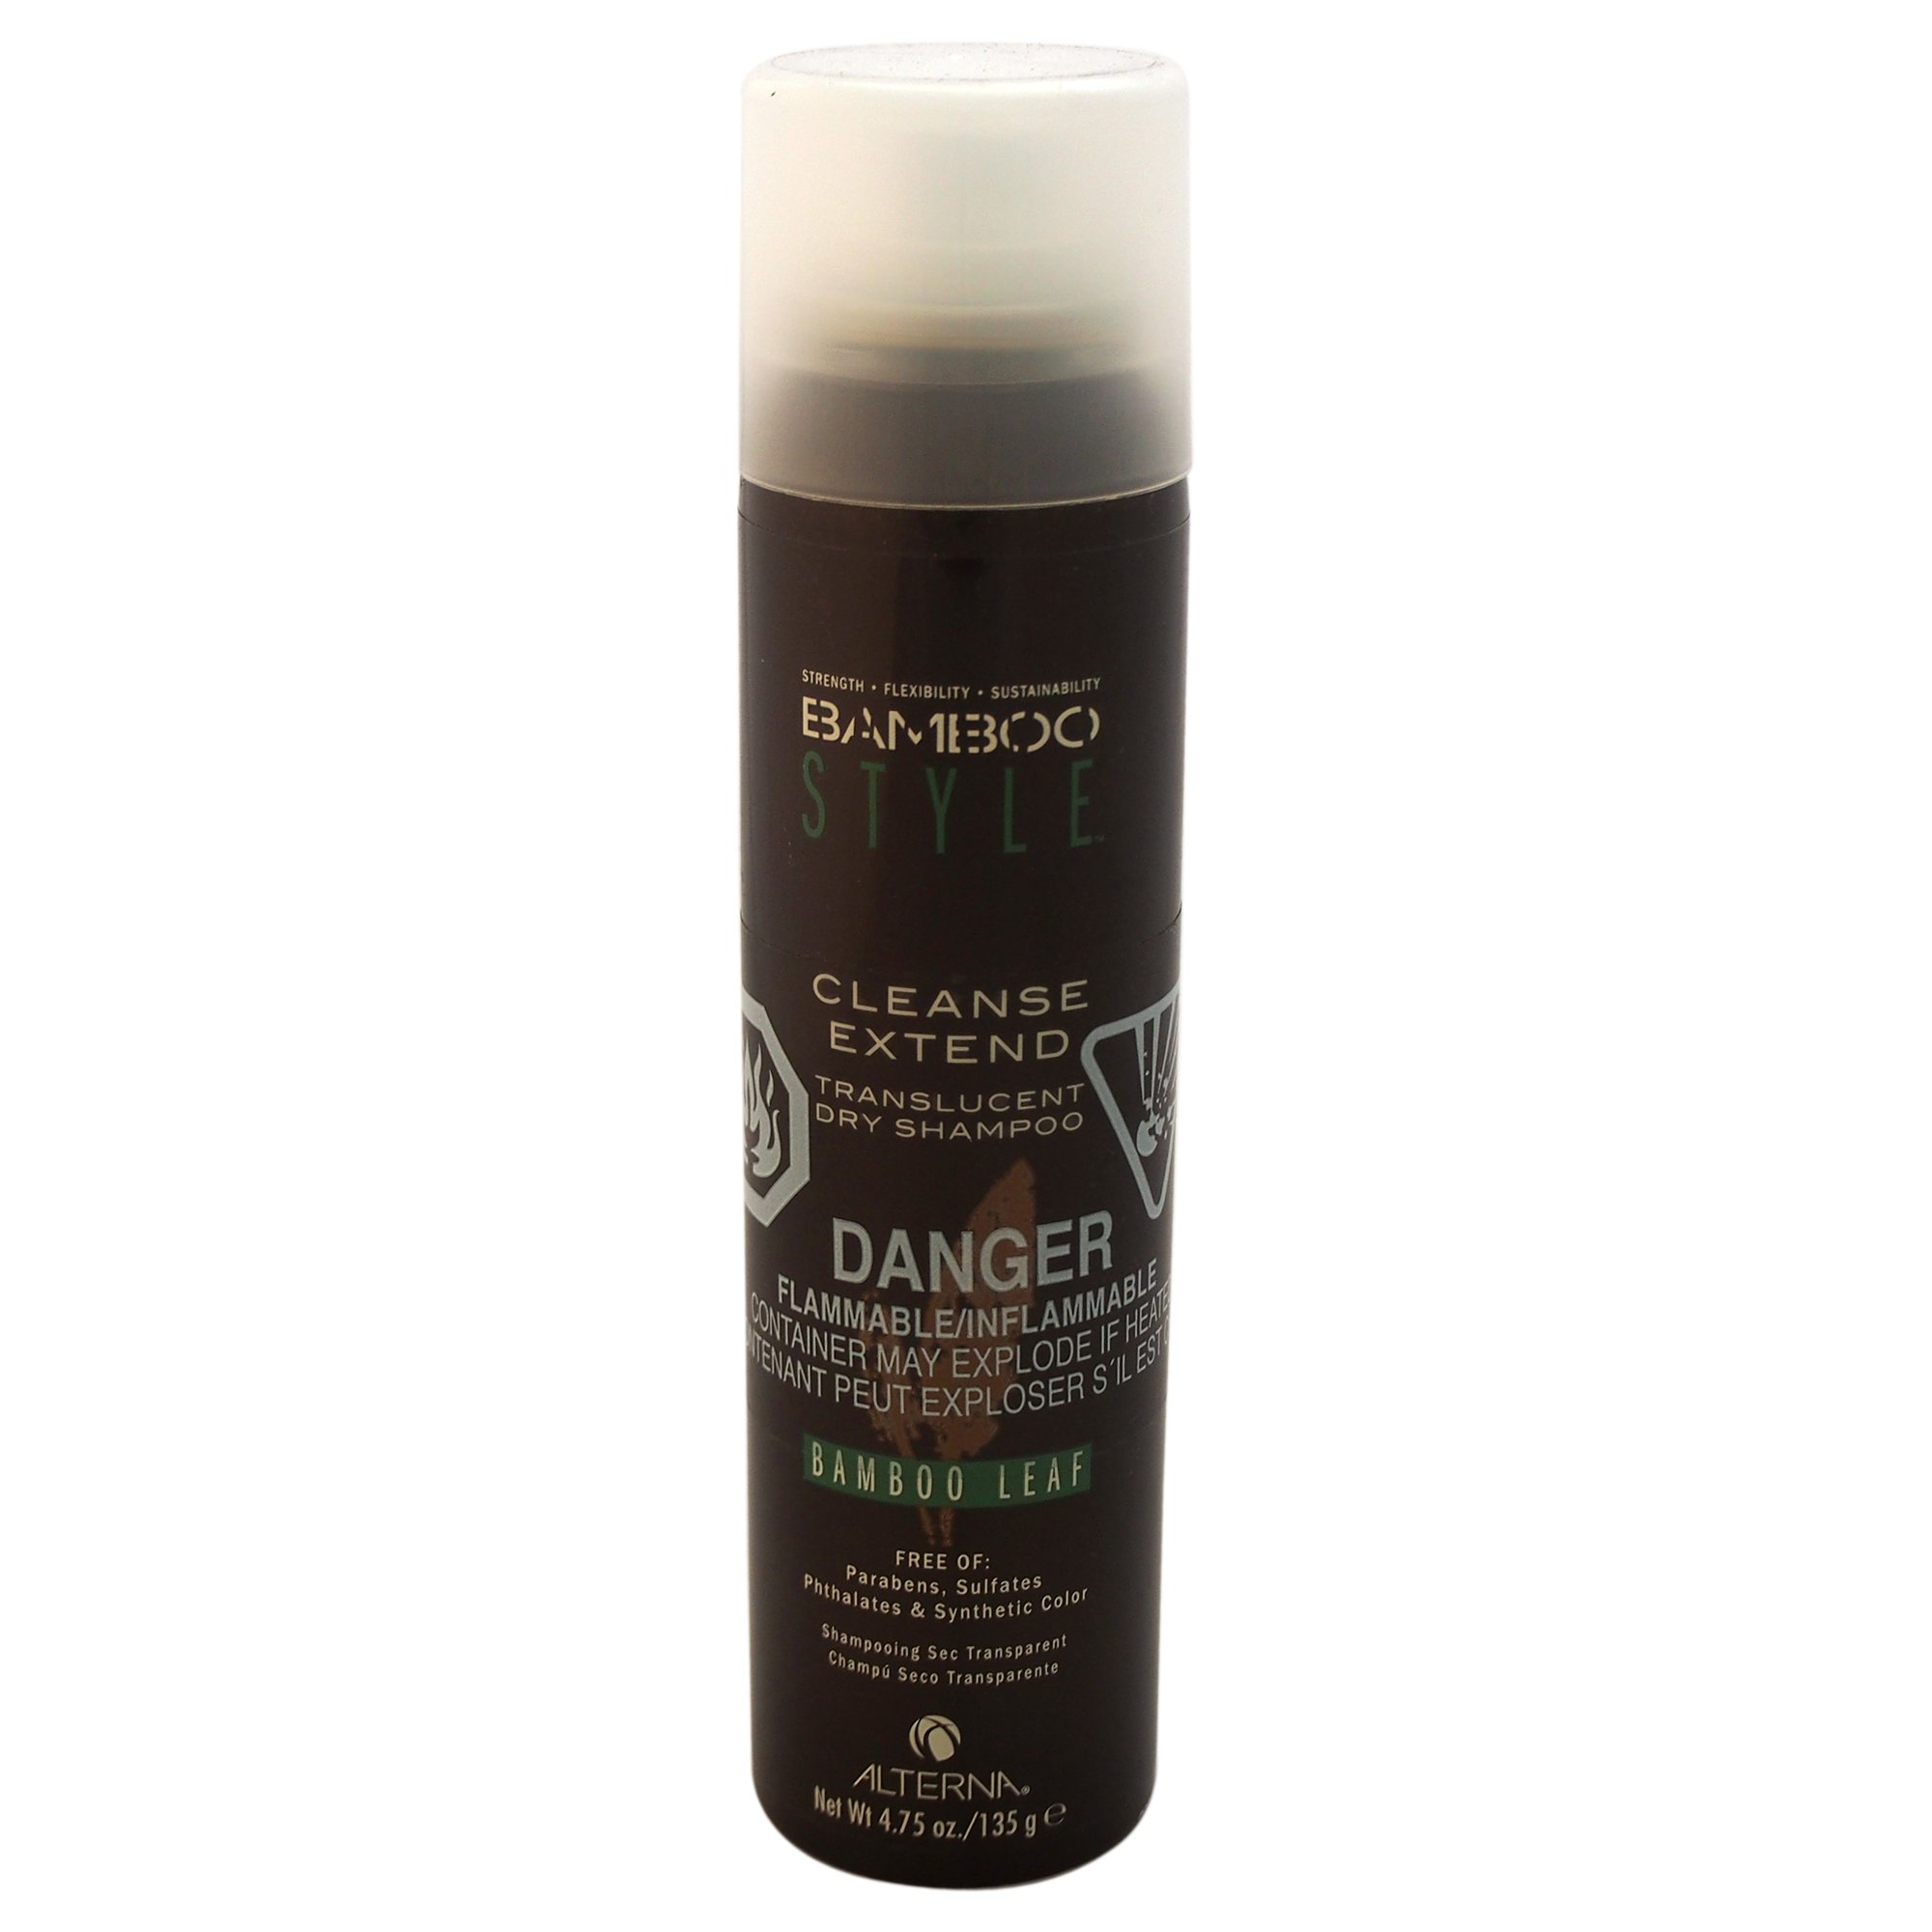 Bamboo Style Cleanse Extend Translucent Dry Shampoo, Bamboo Leaf, 4.75-Ounce